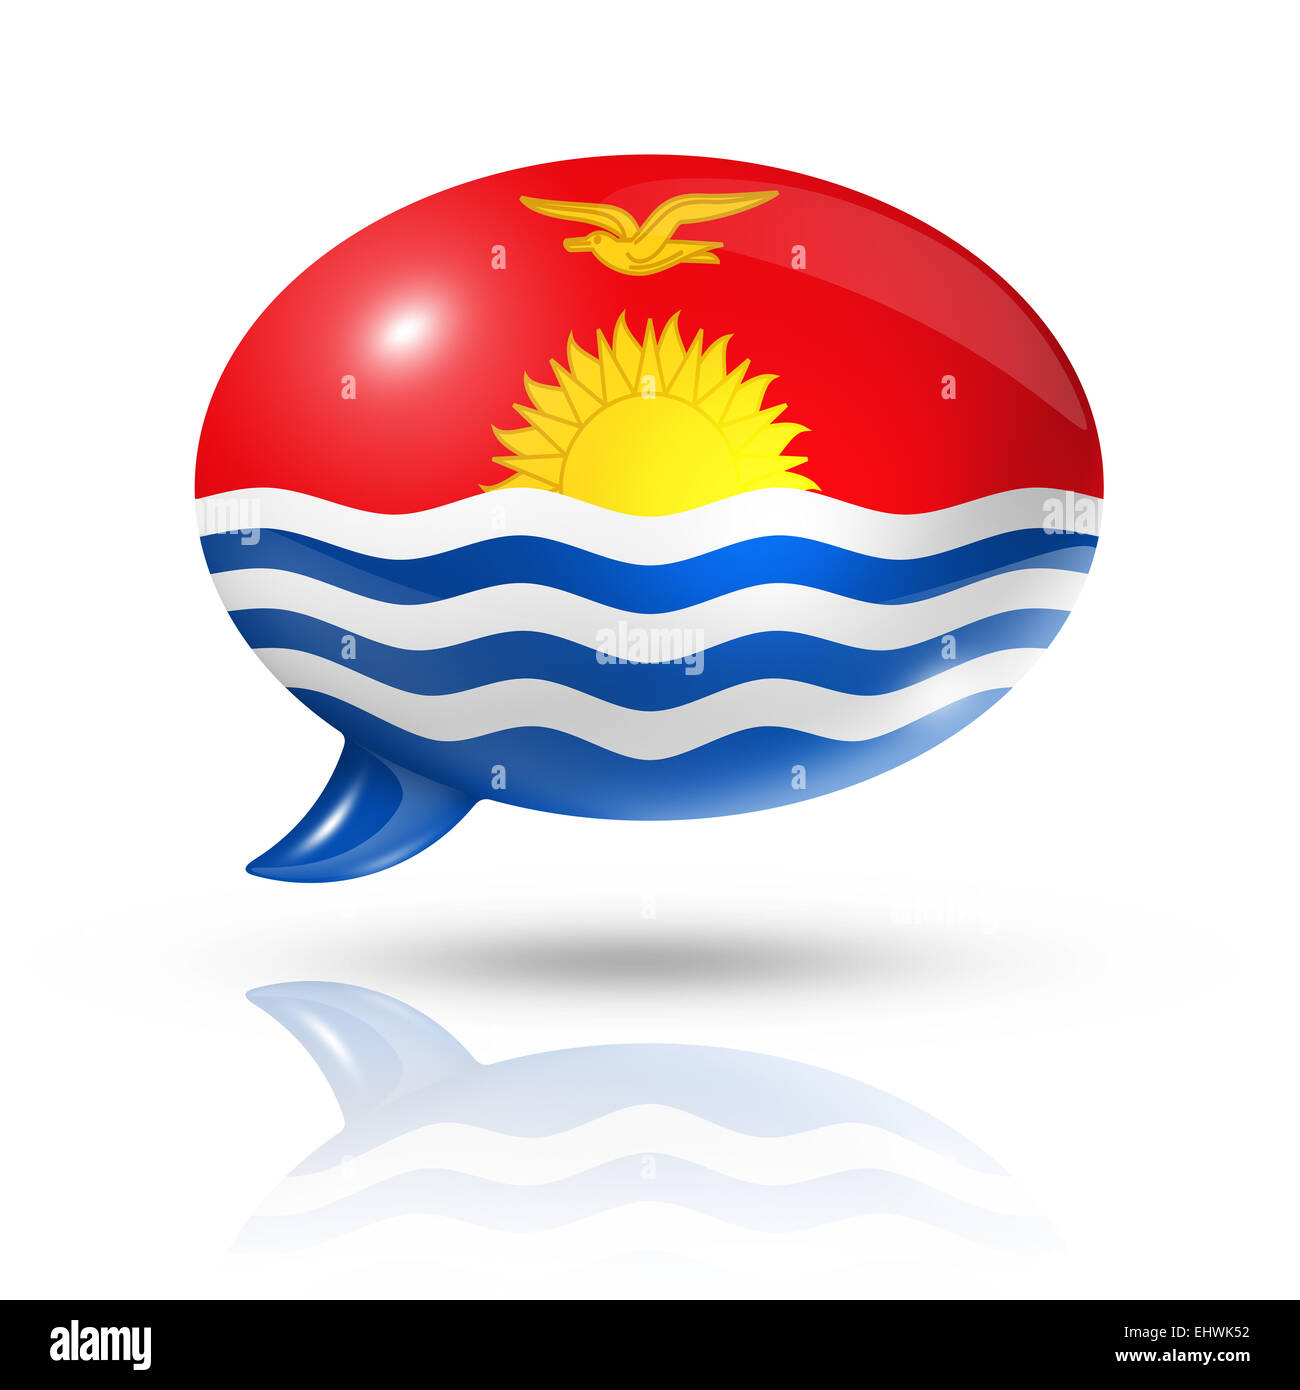 three dimensional Kiribati flag in a speech bubble isolated on white with clipping path - Stock Image